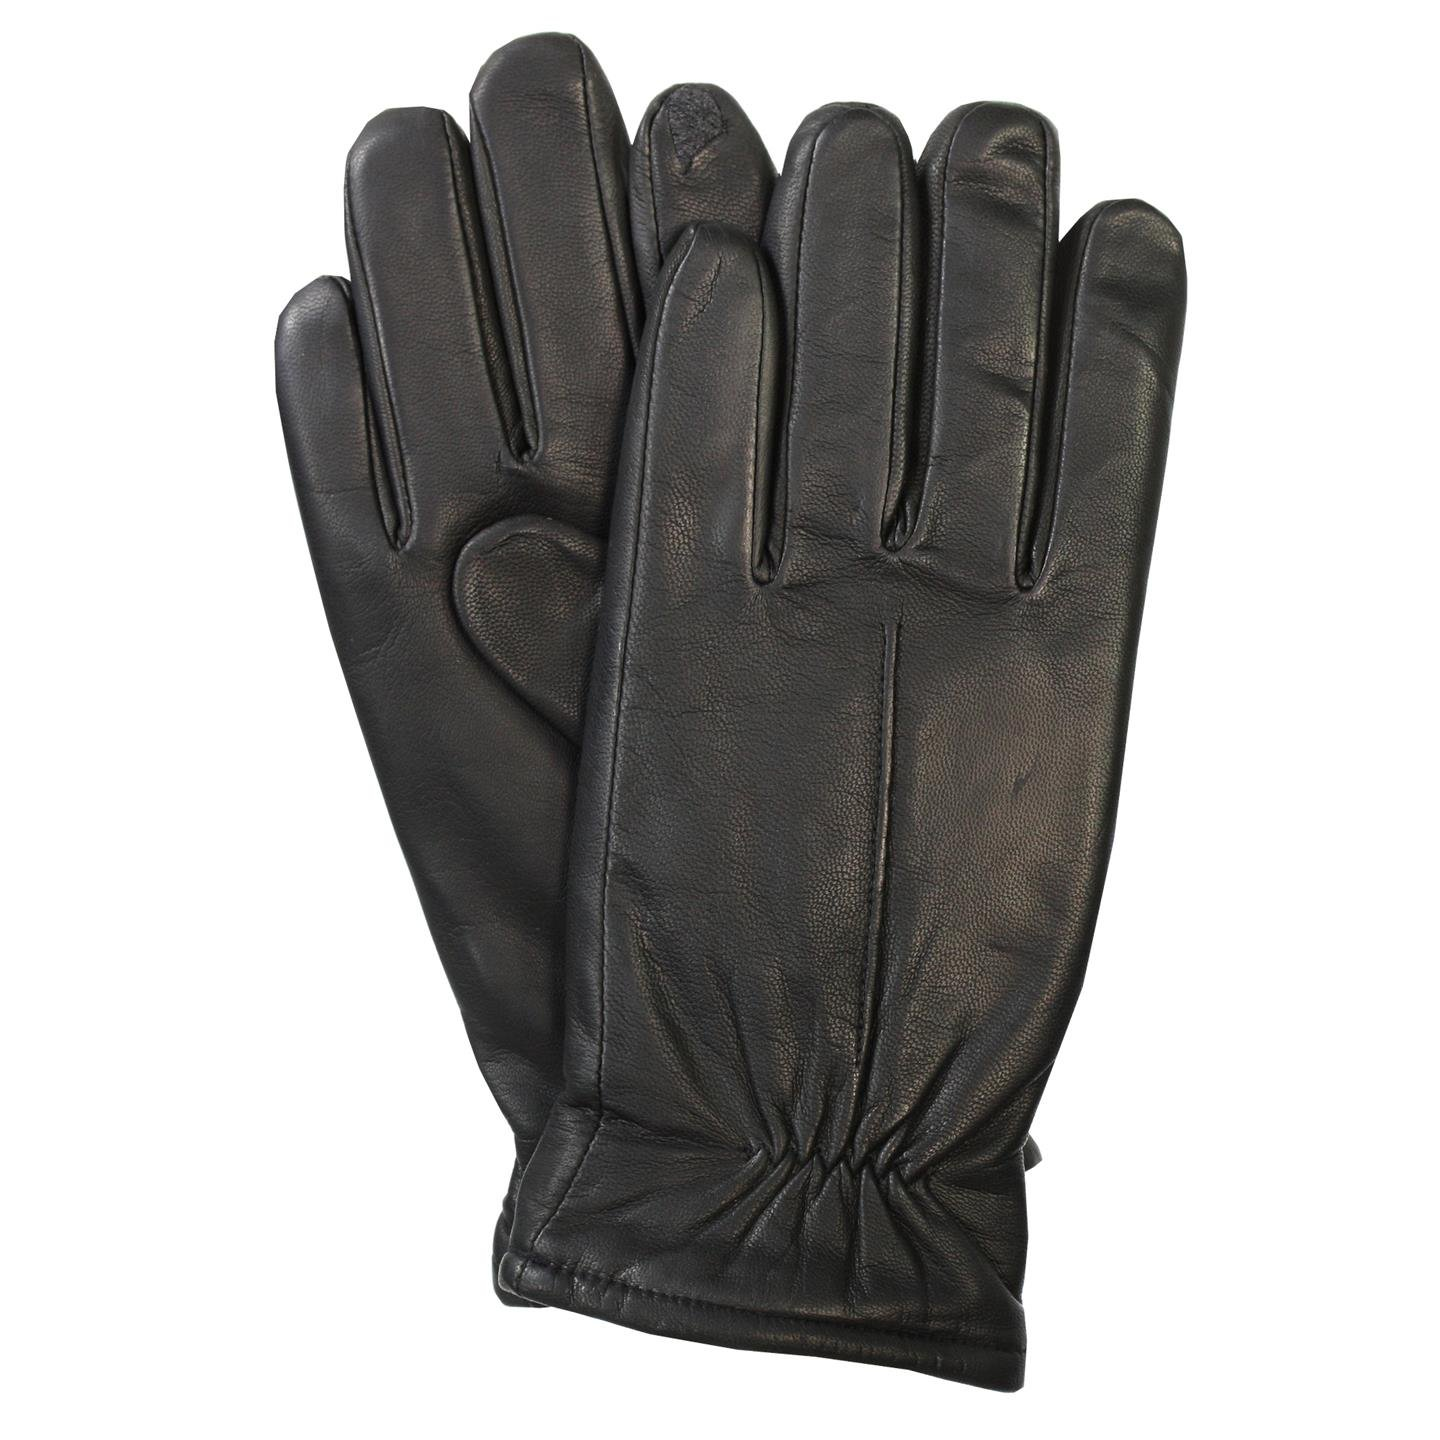 Black leather gloves cape town - Isotoner Mens Smartouch Technology Genuine Leather Gloves M Black At Amazon Men S Clothing Store